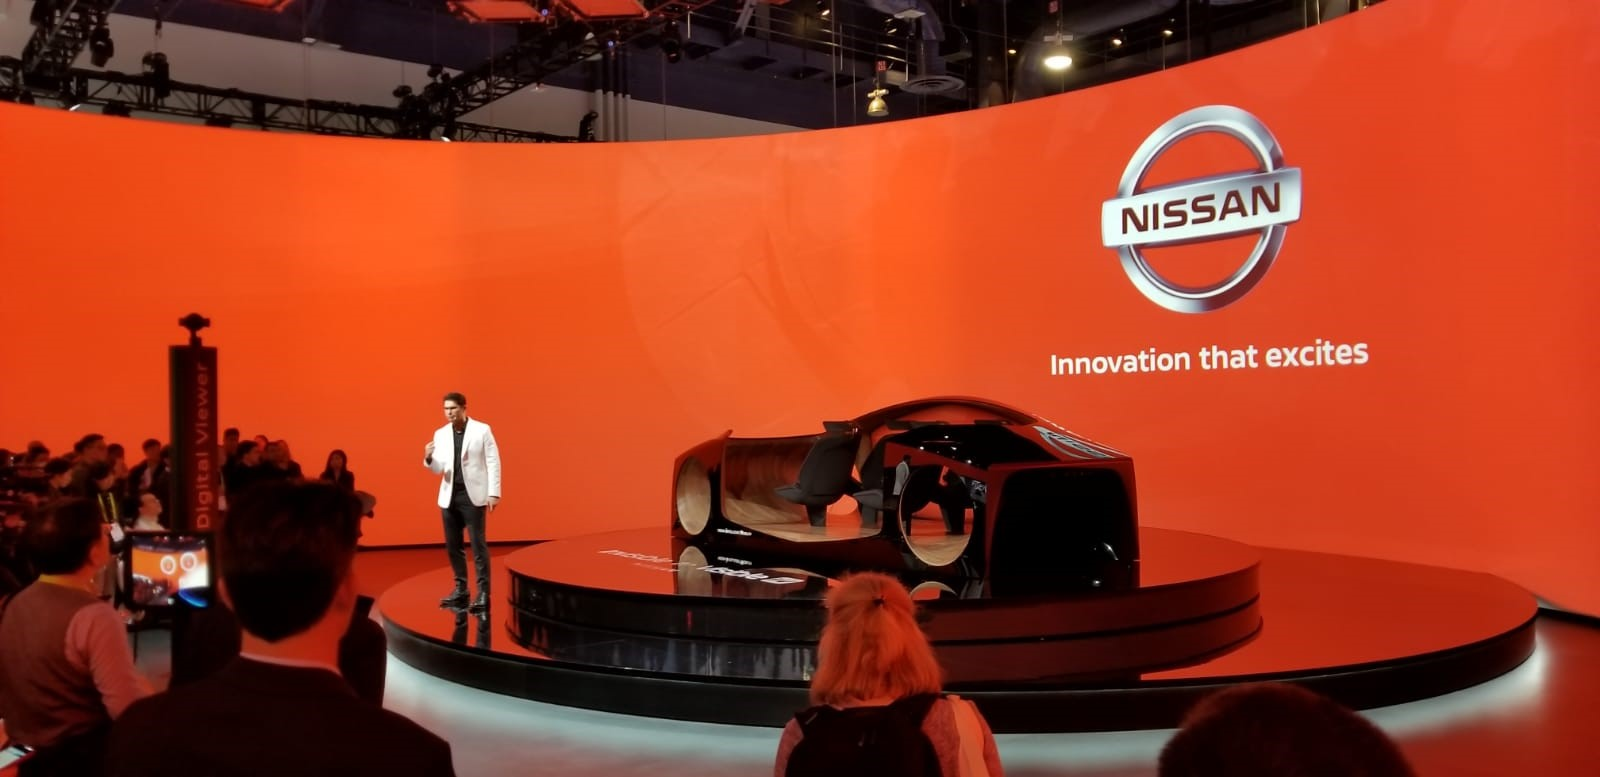 Nissan presented its new invisible-to-visible (I2v) technology at CES. I2V uses virtual reality and in-vehicle sensors to enhance a driver's awareness.